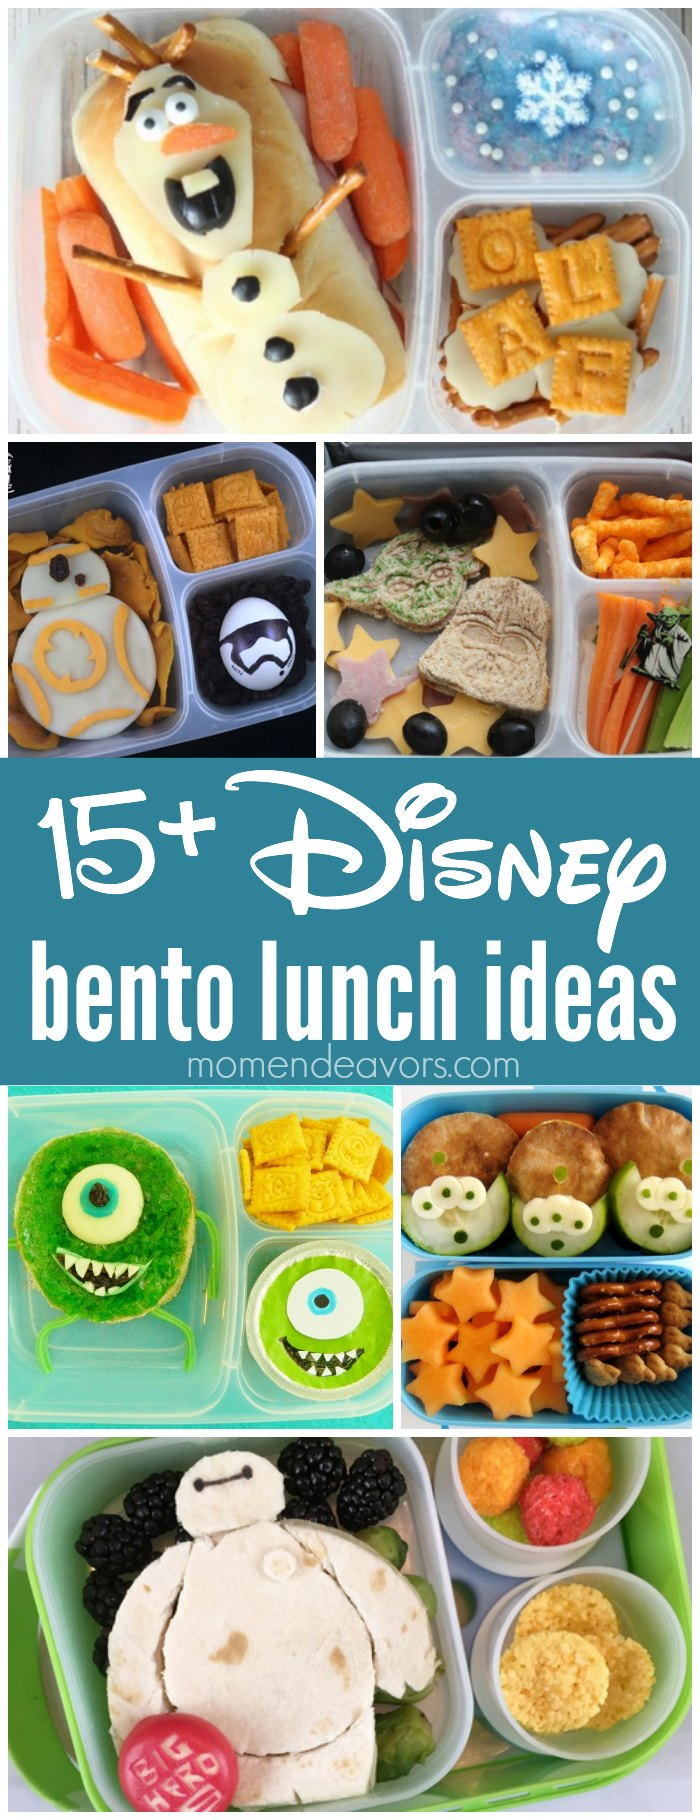 Disney Bento Lunch Ideas